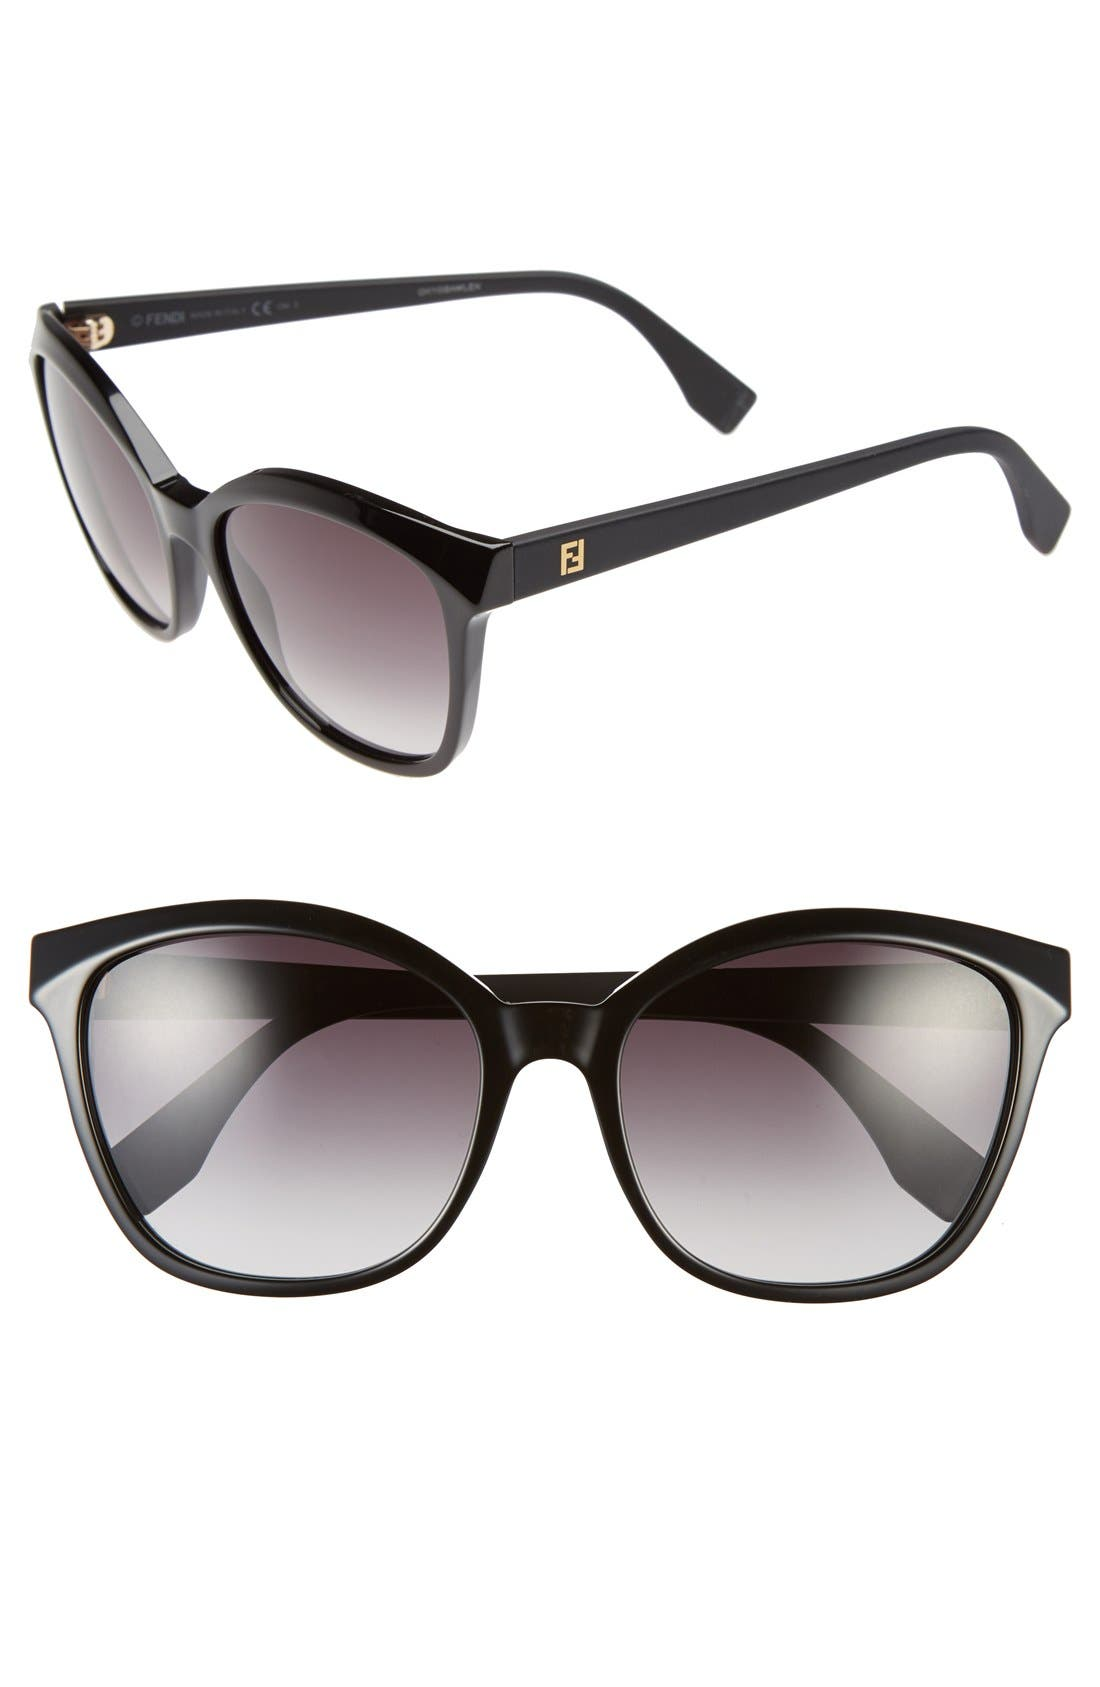 Main Image - Fendi 55mm Retro Sunglasses